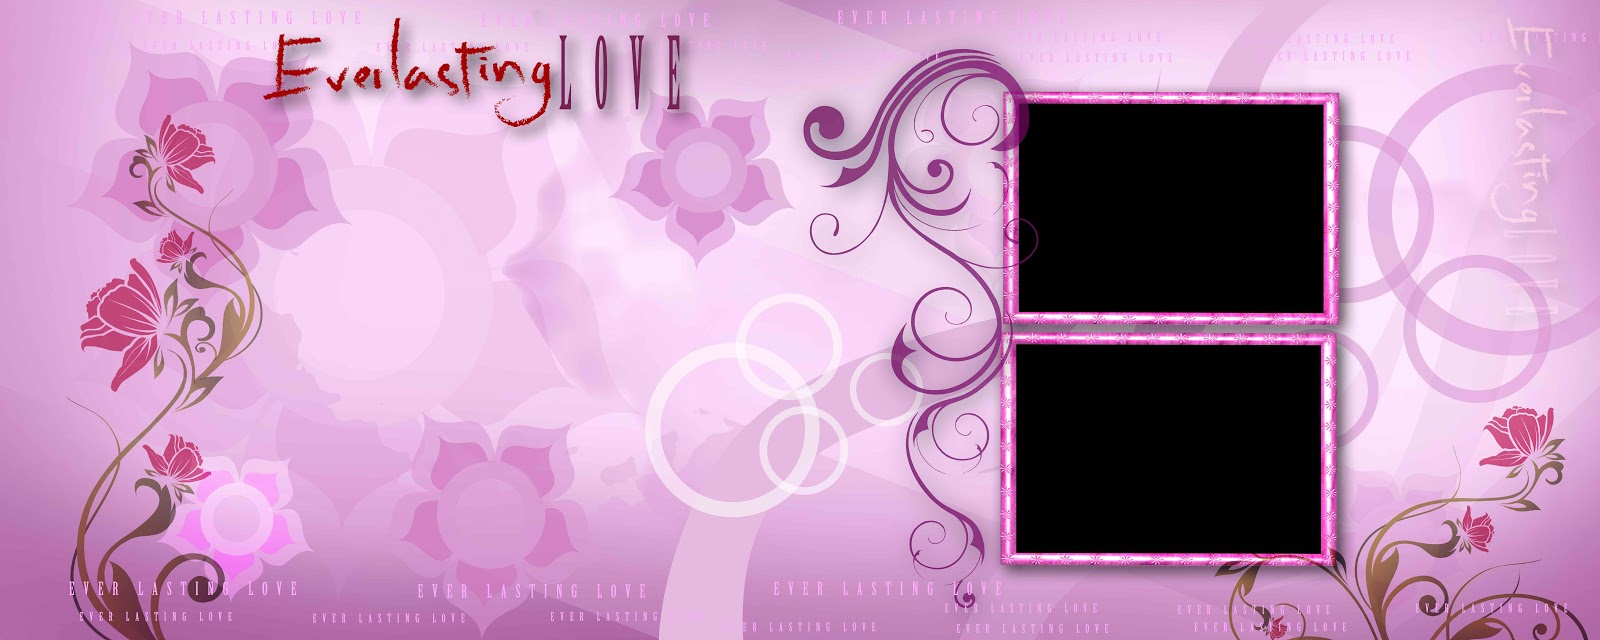 Psd wedding backgrounds for photoshop free download - PSD